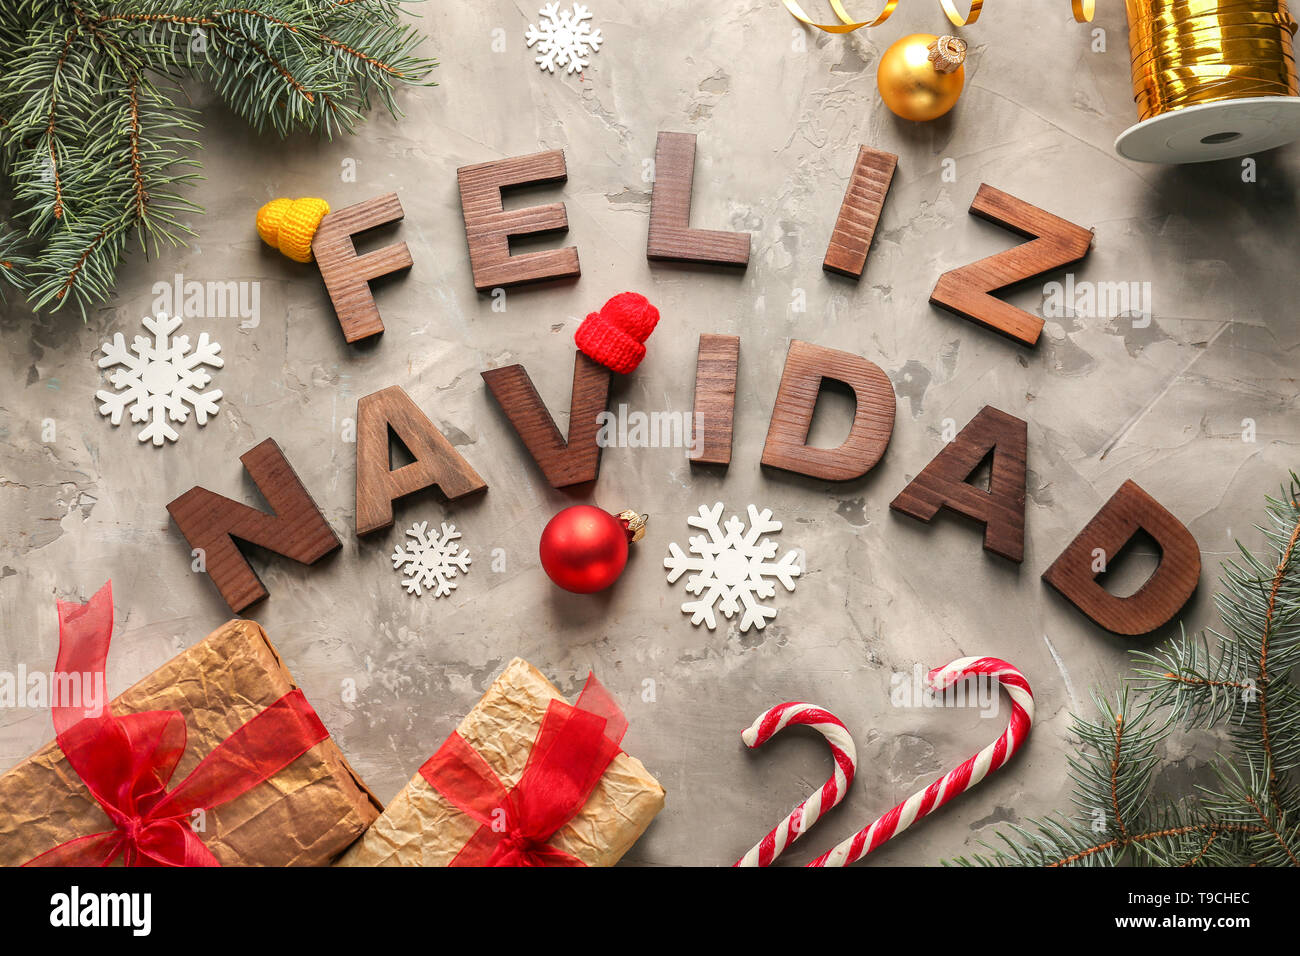 Words Feliz Navidad Made With Wooden Letters And Christmas